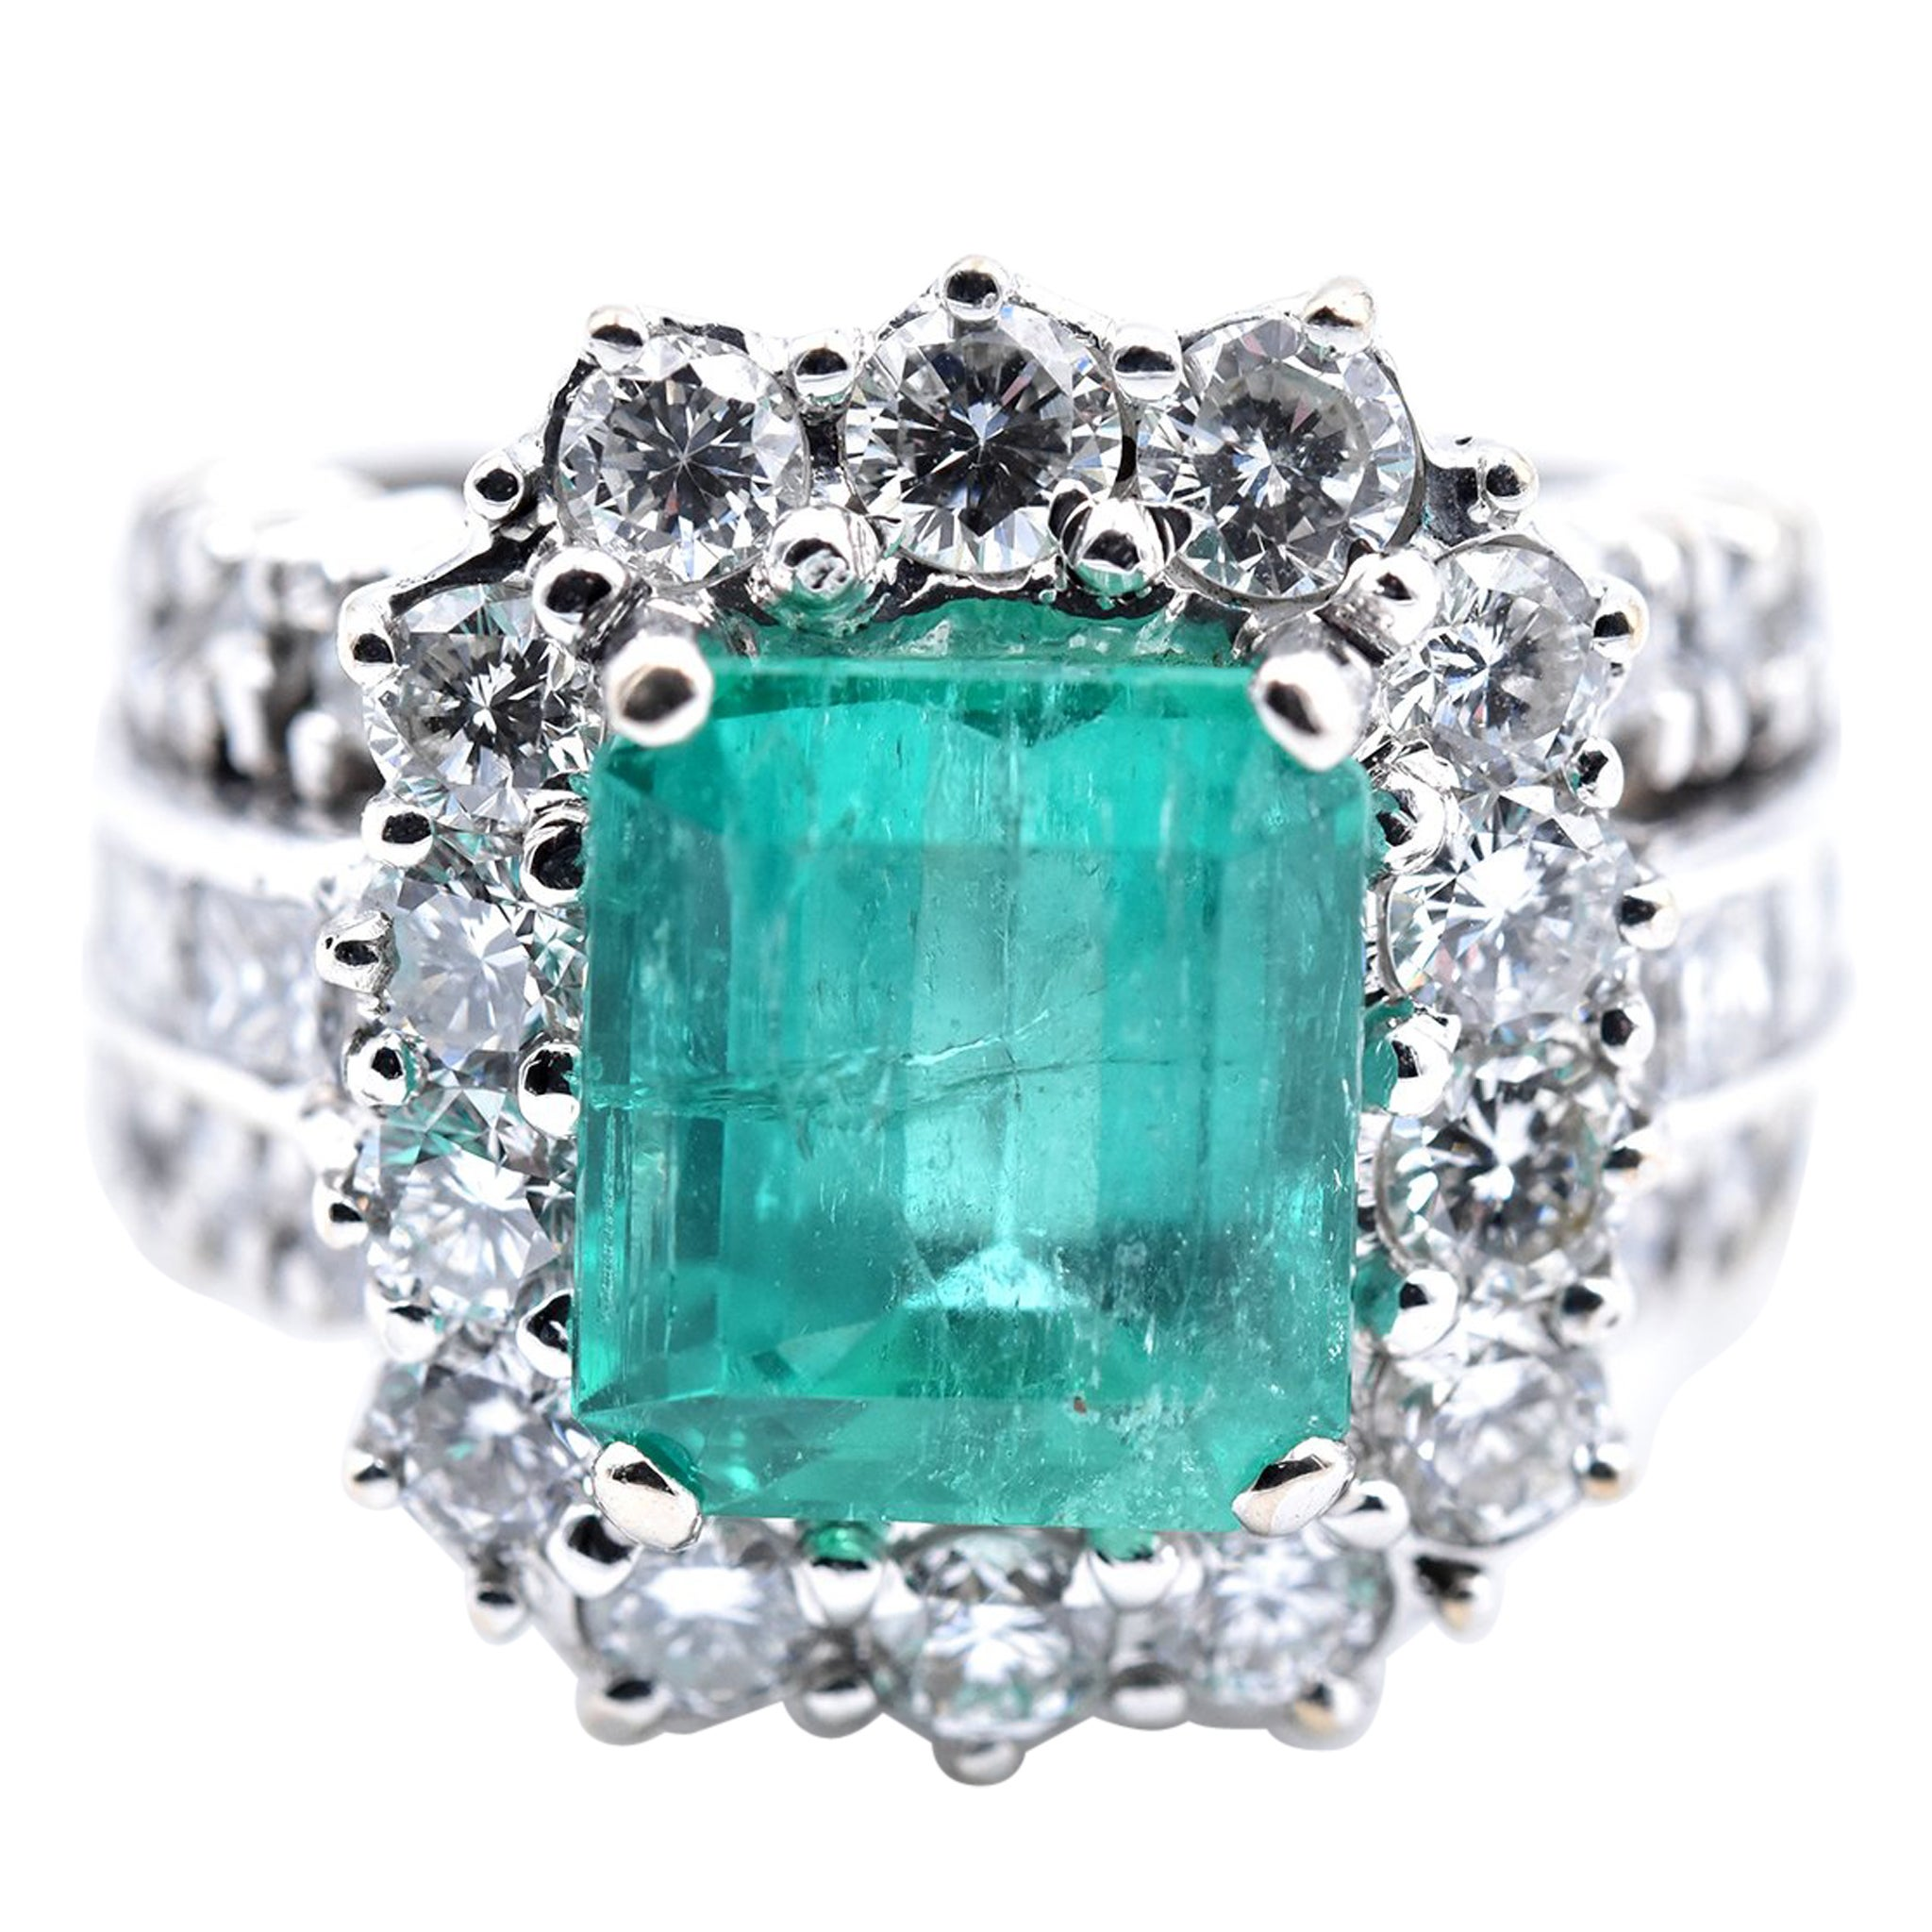 6926defd7a5ee 18 Karat White Gold Petros & Takis Emerald and Diamond Ring